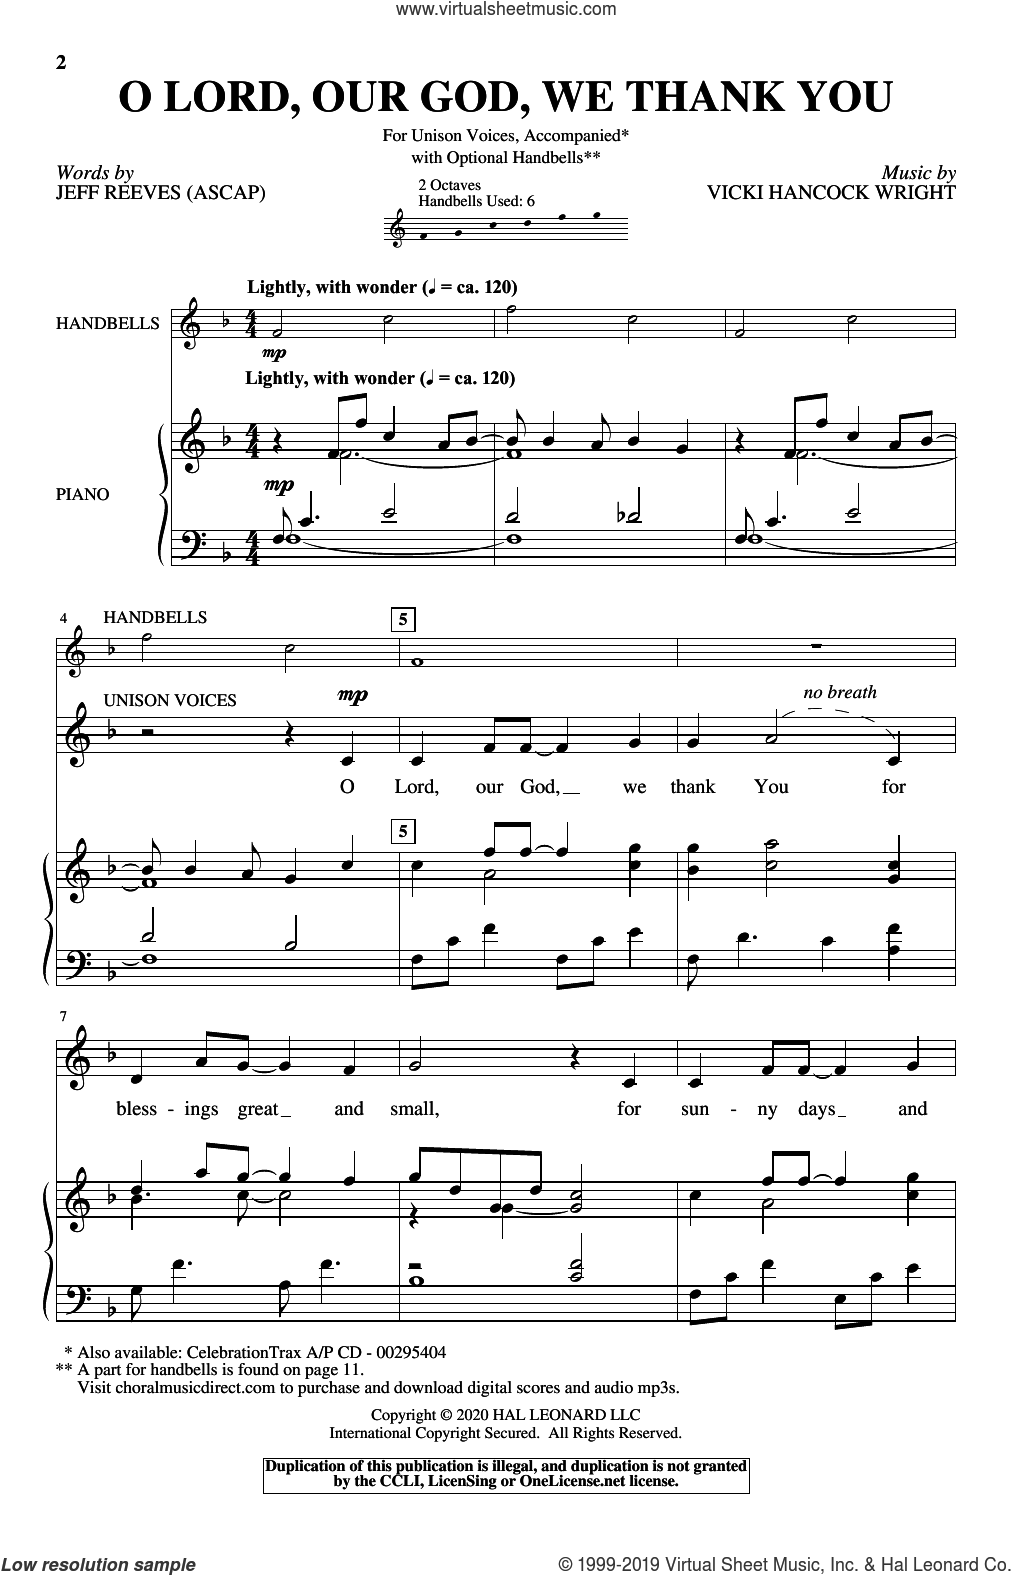 O Lord, Our God, We Thank You sheet music for choir (Unison) by Vicki Hancock Wright, Jeff Reeves and Jeff Reeves and Vicki Hancock Wright, intermediate skill level